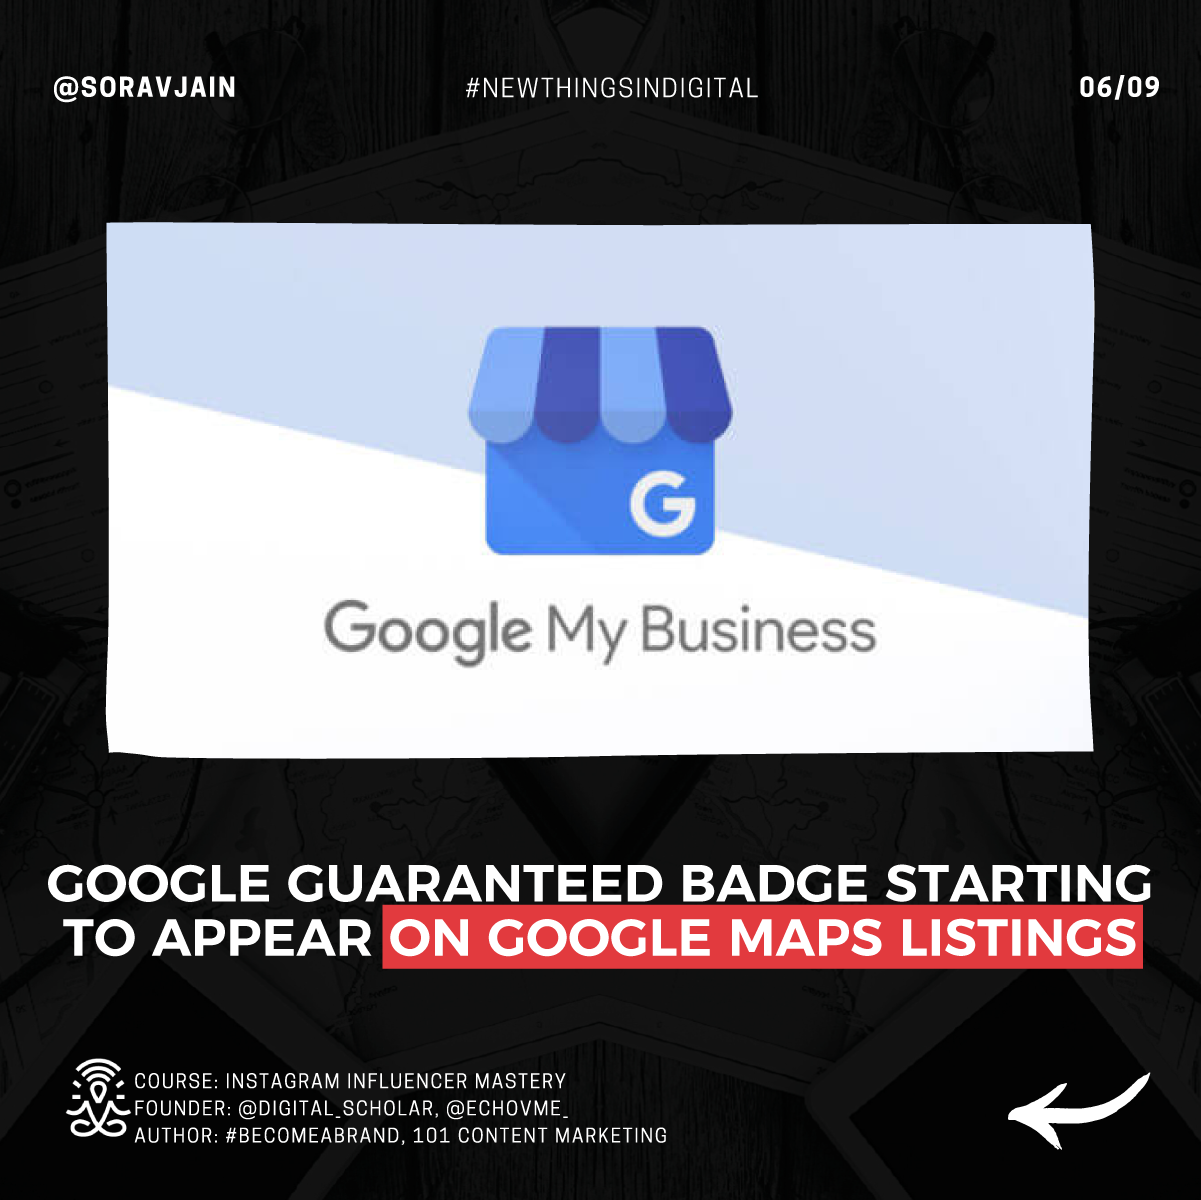 Google Guaranteed badge starting to appear on Google Maps listings